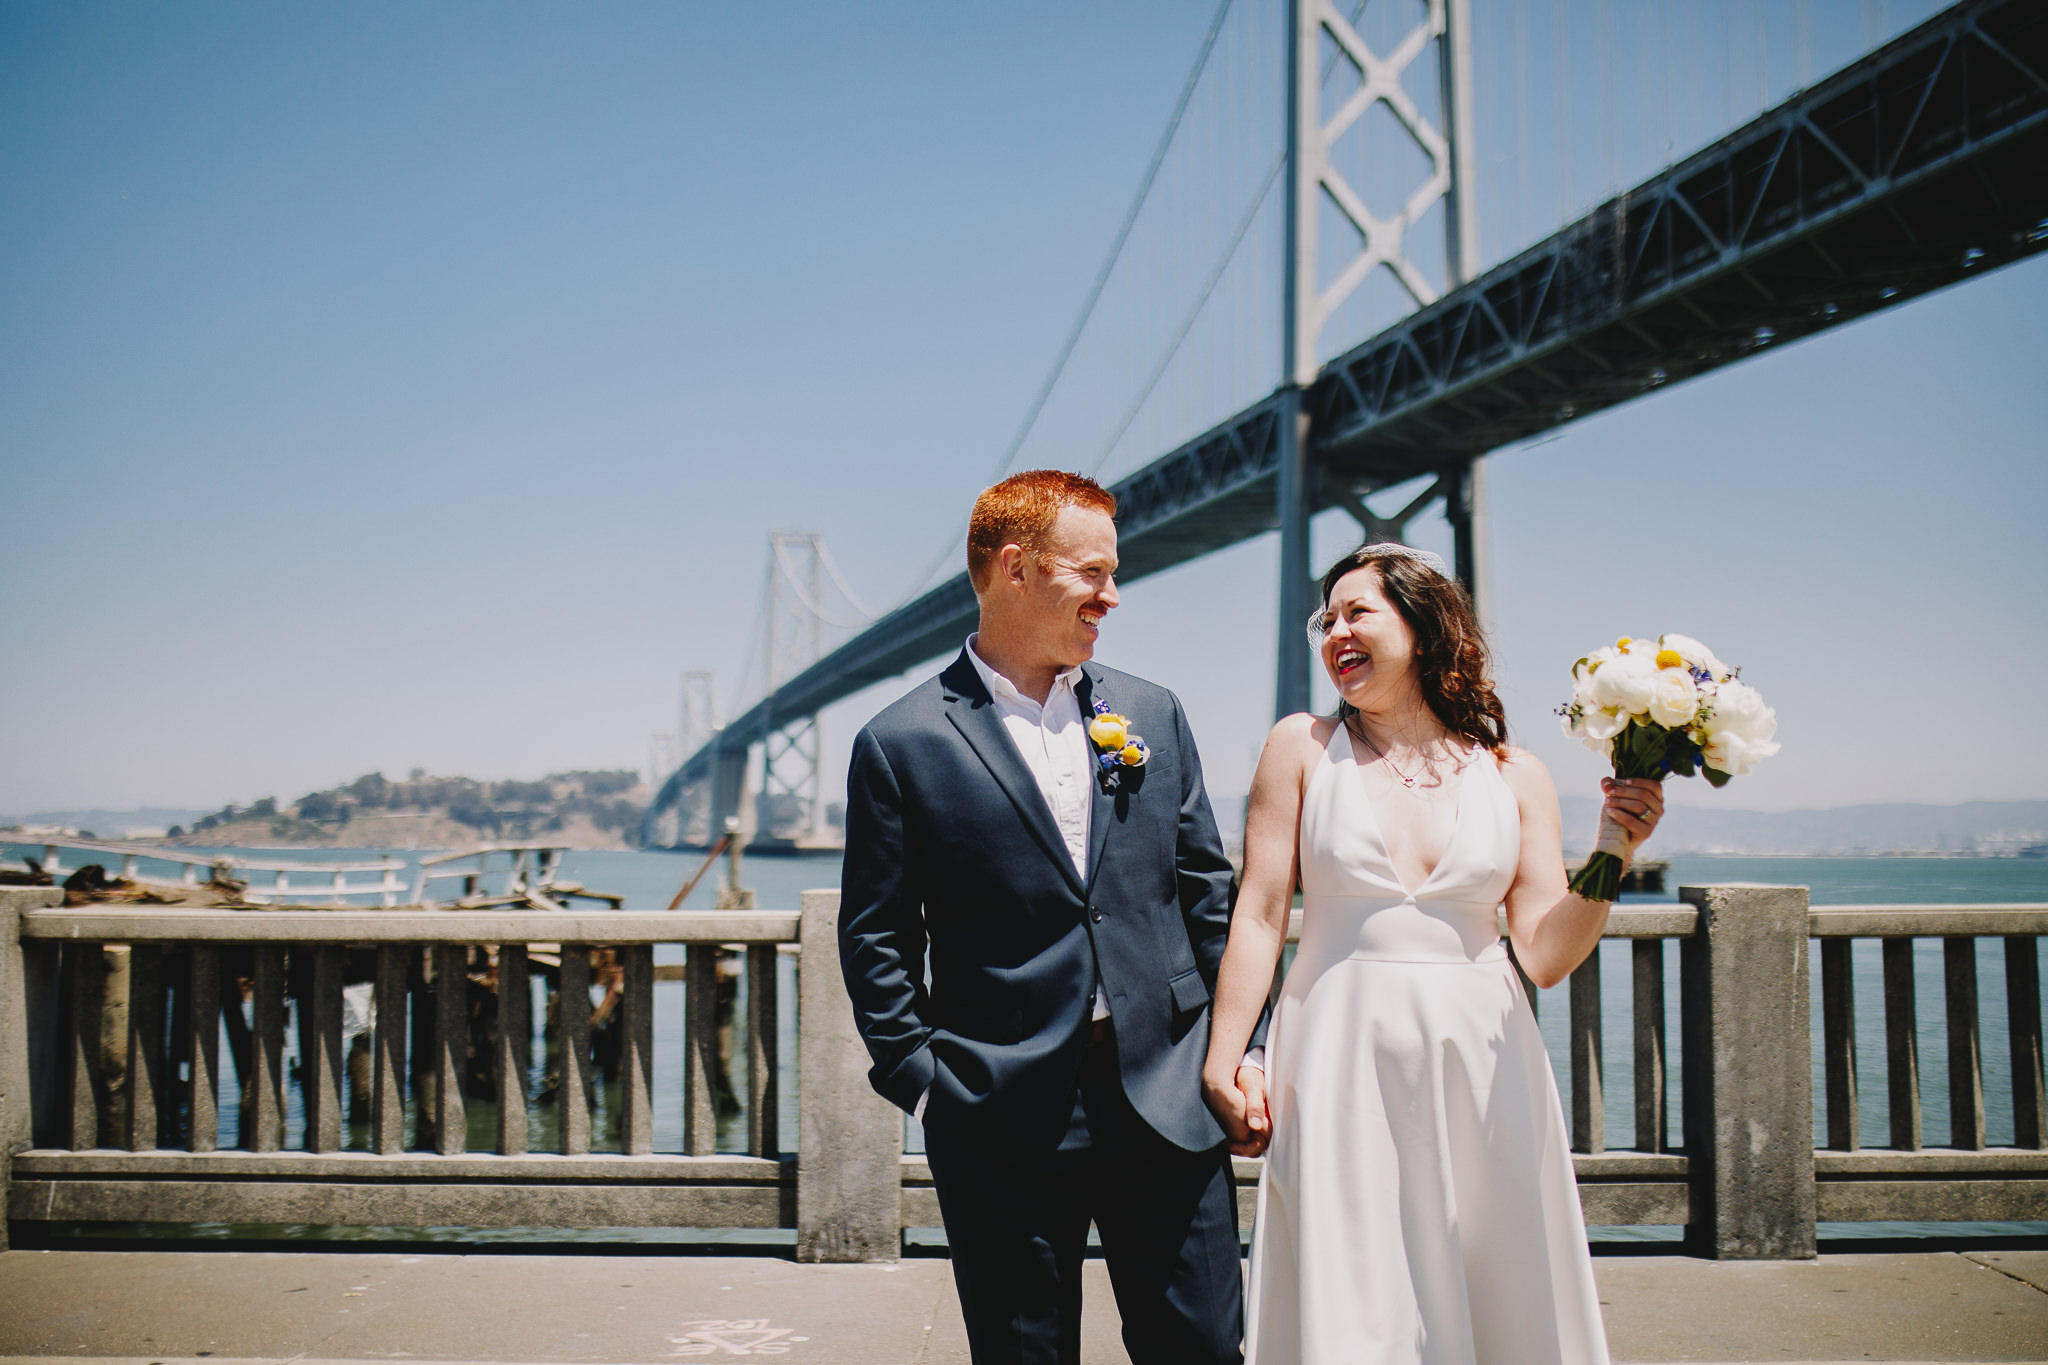 Archer Inspired Photography SF City Hall Elopement Wedding Lifestyle Documentary Affordable Photographer-298.jpg